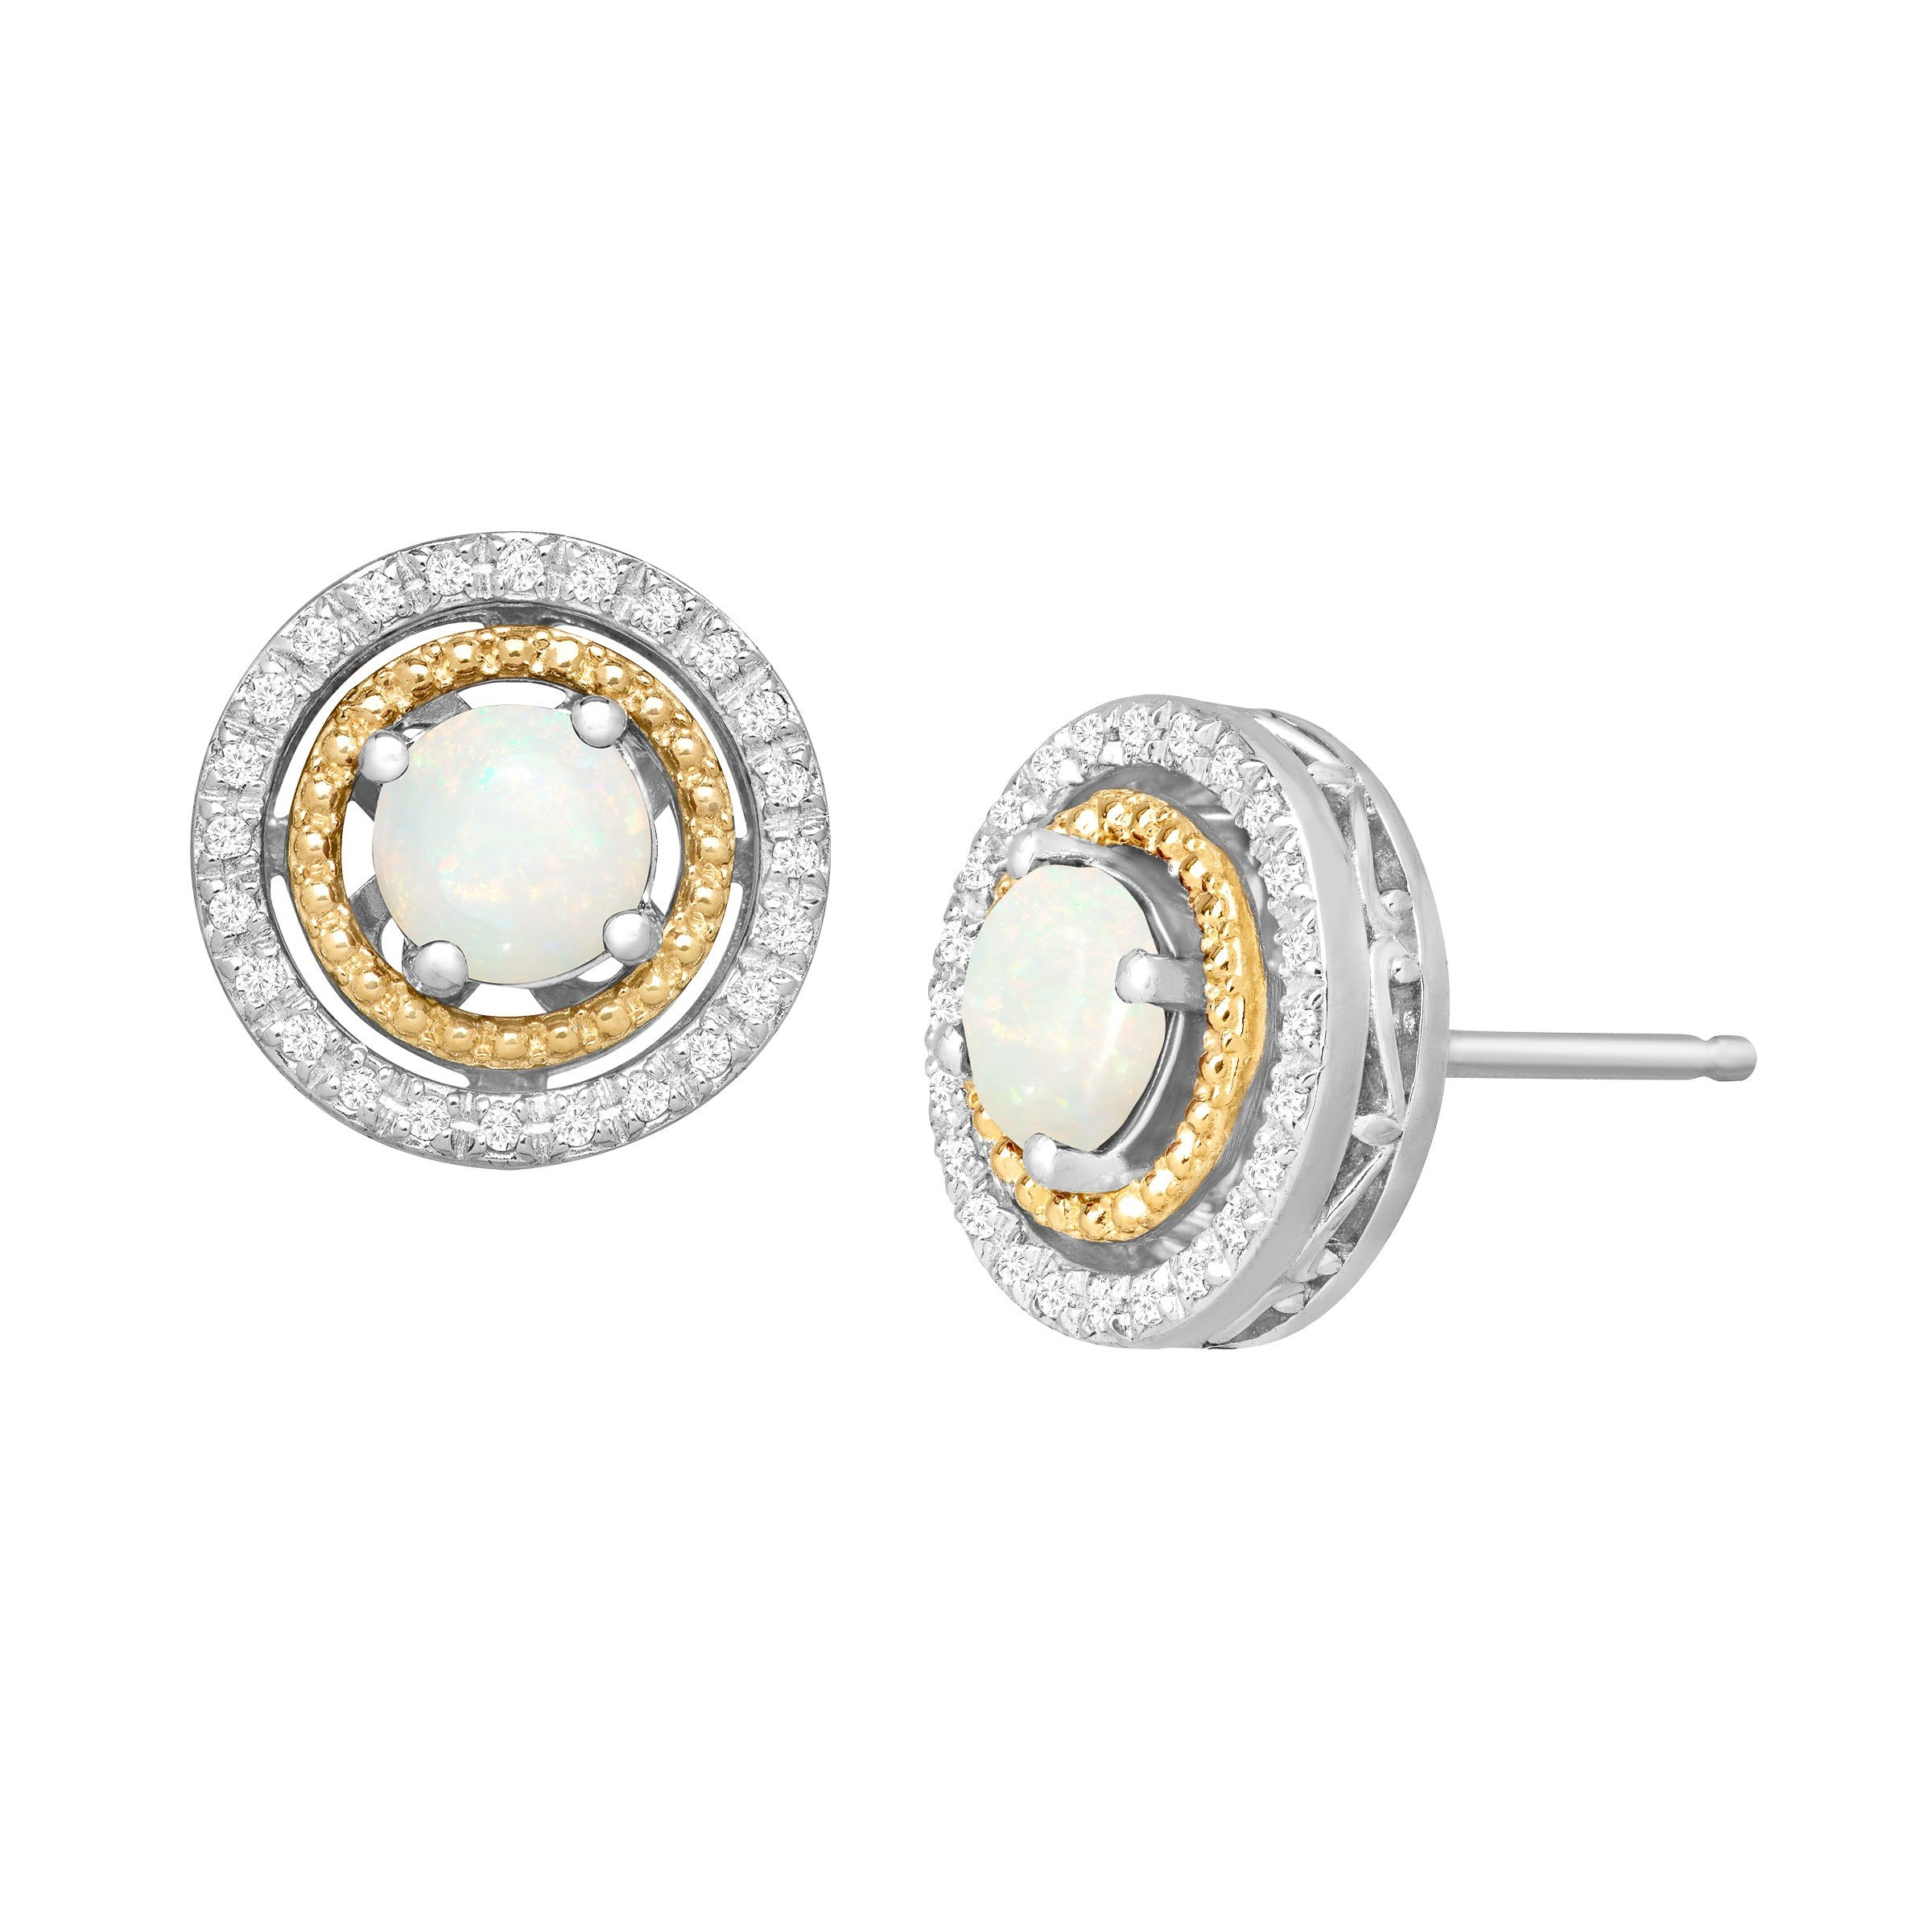 5/8 ct Natural Opal & 1/8 ct Diamond Double Halo Stud Earrings in Sterling Silver & 14K Gold